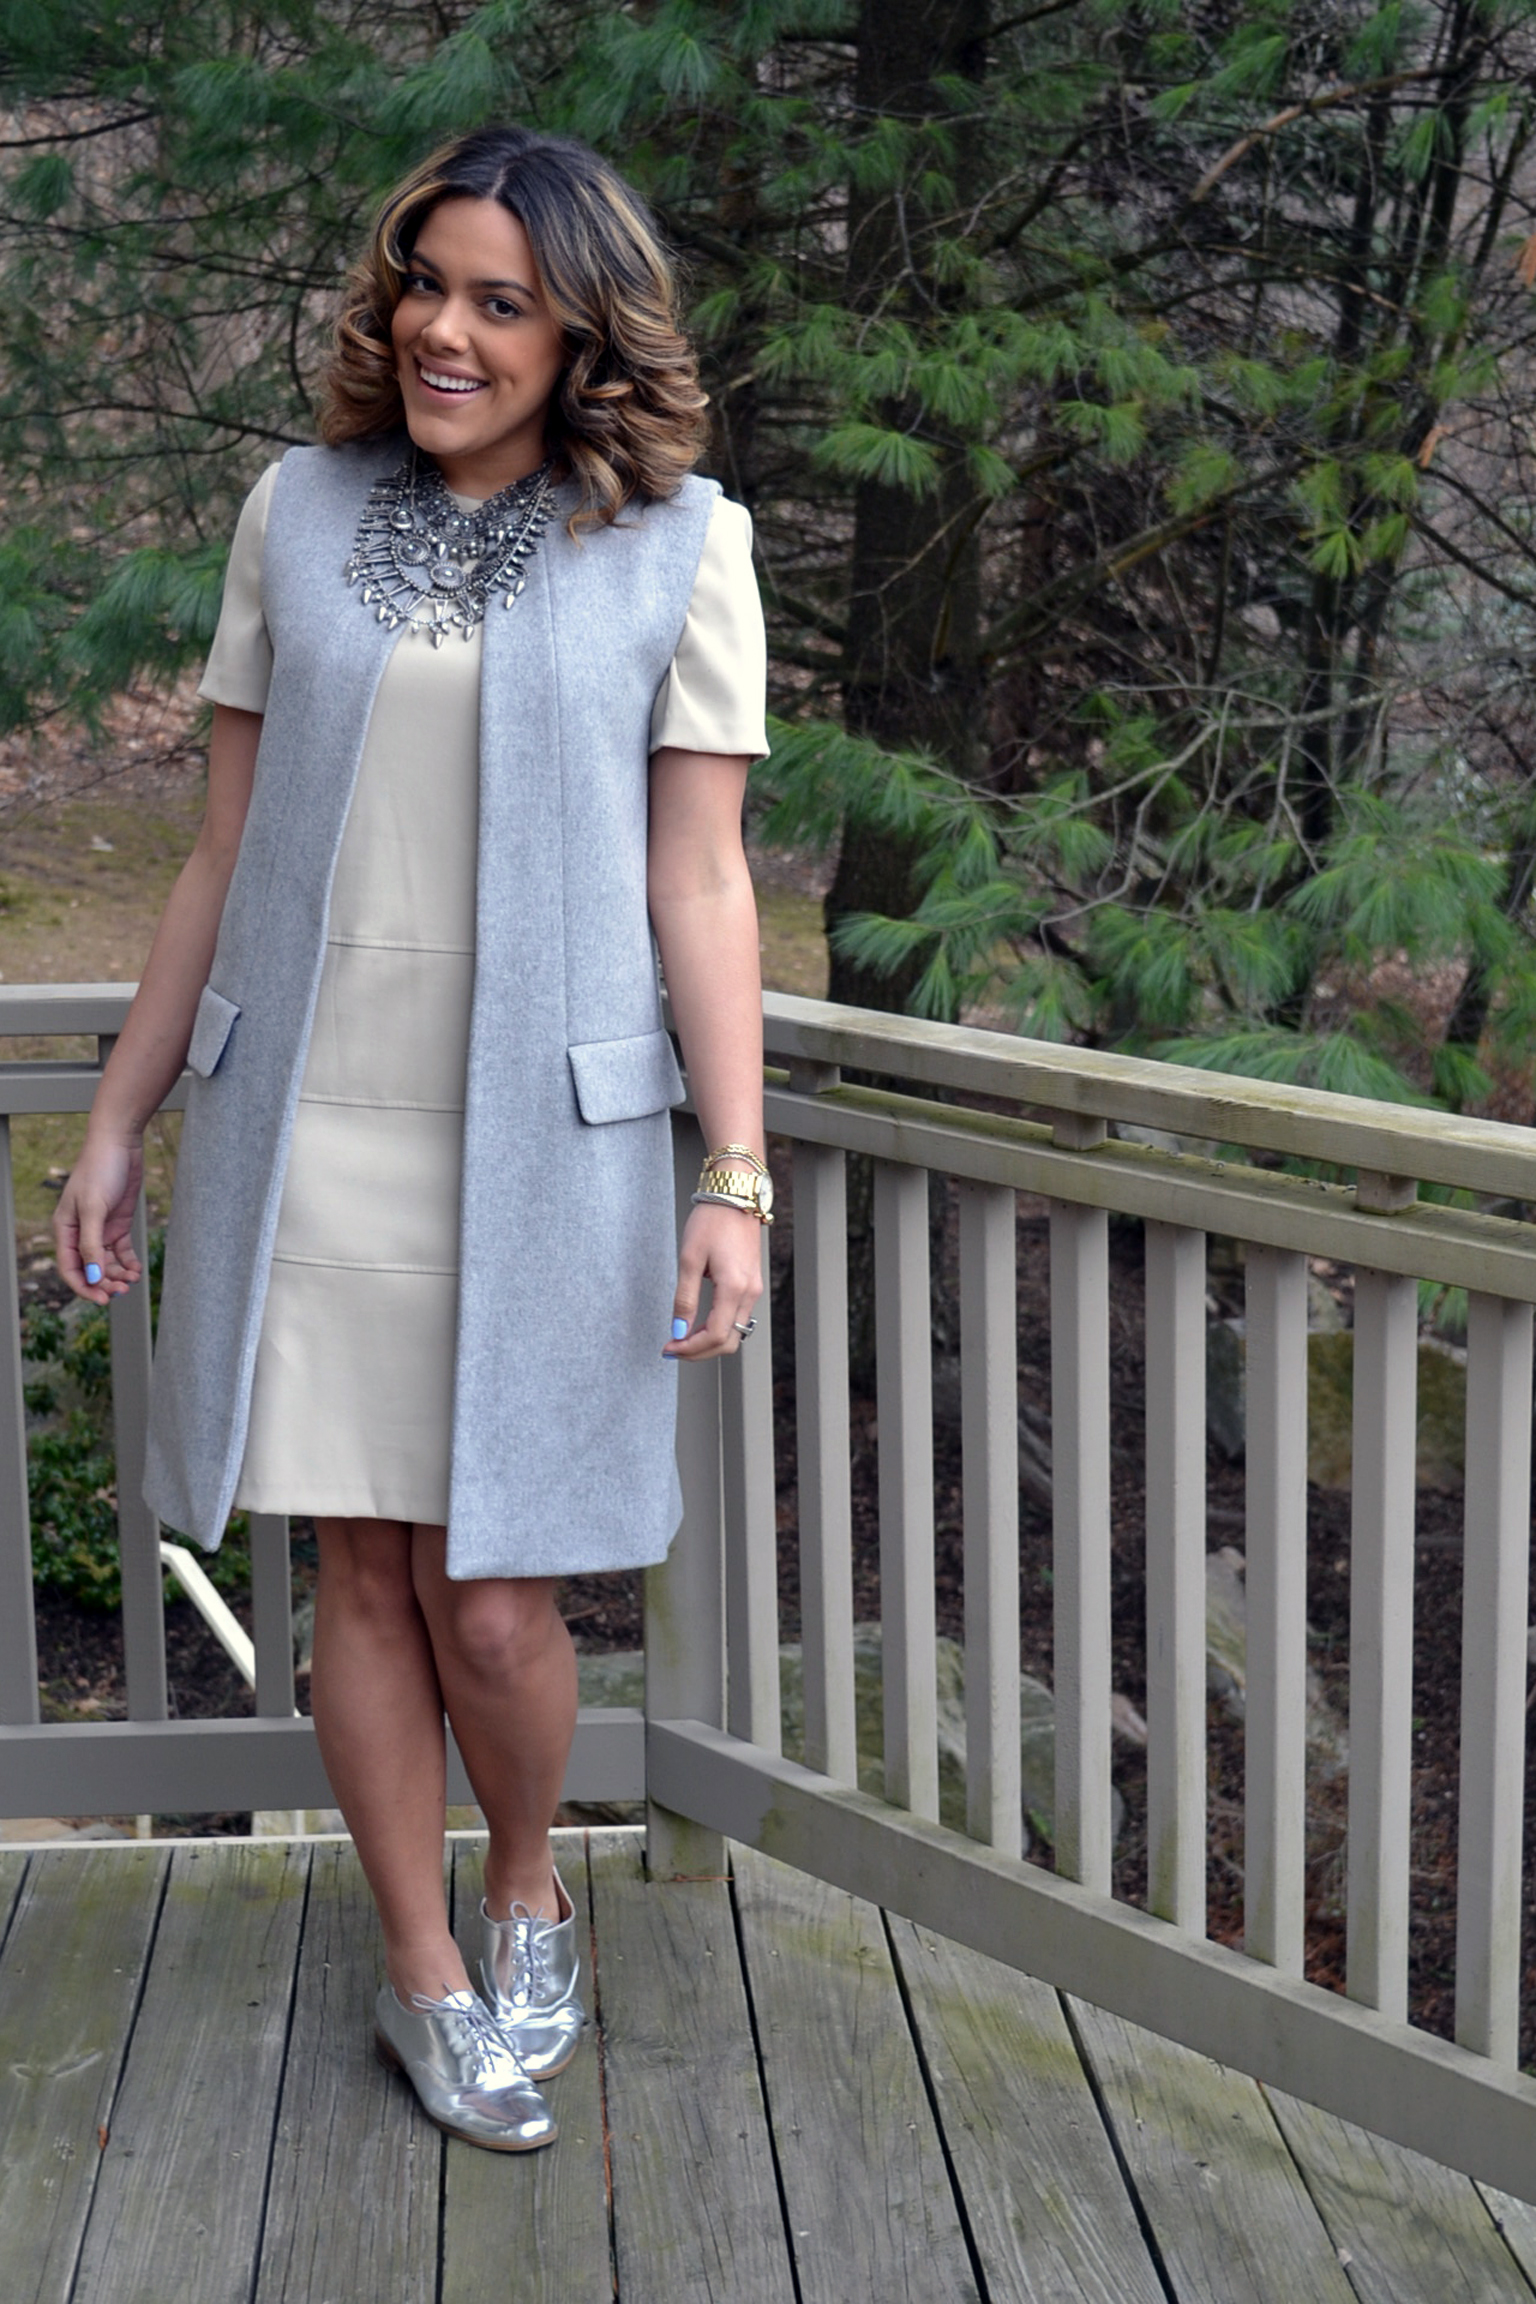 Wearing: Thrifted Dress, Zara Vest Coat + Necklace, JustFab Shoes